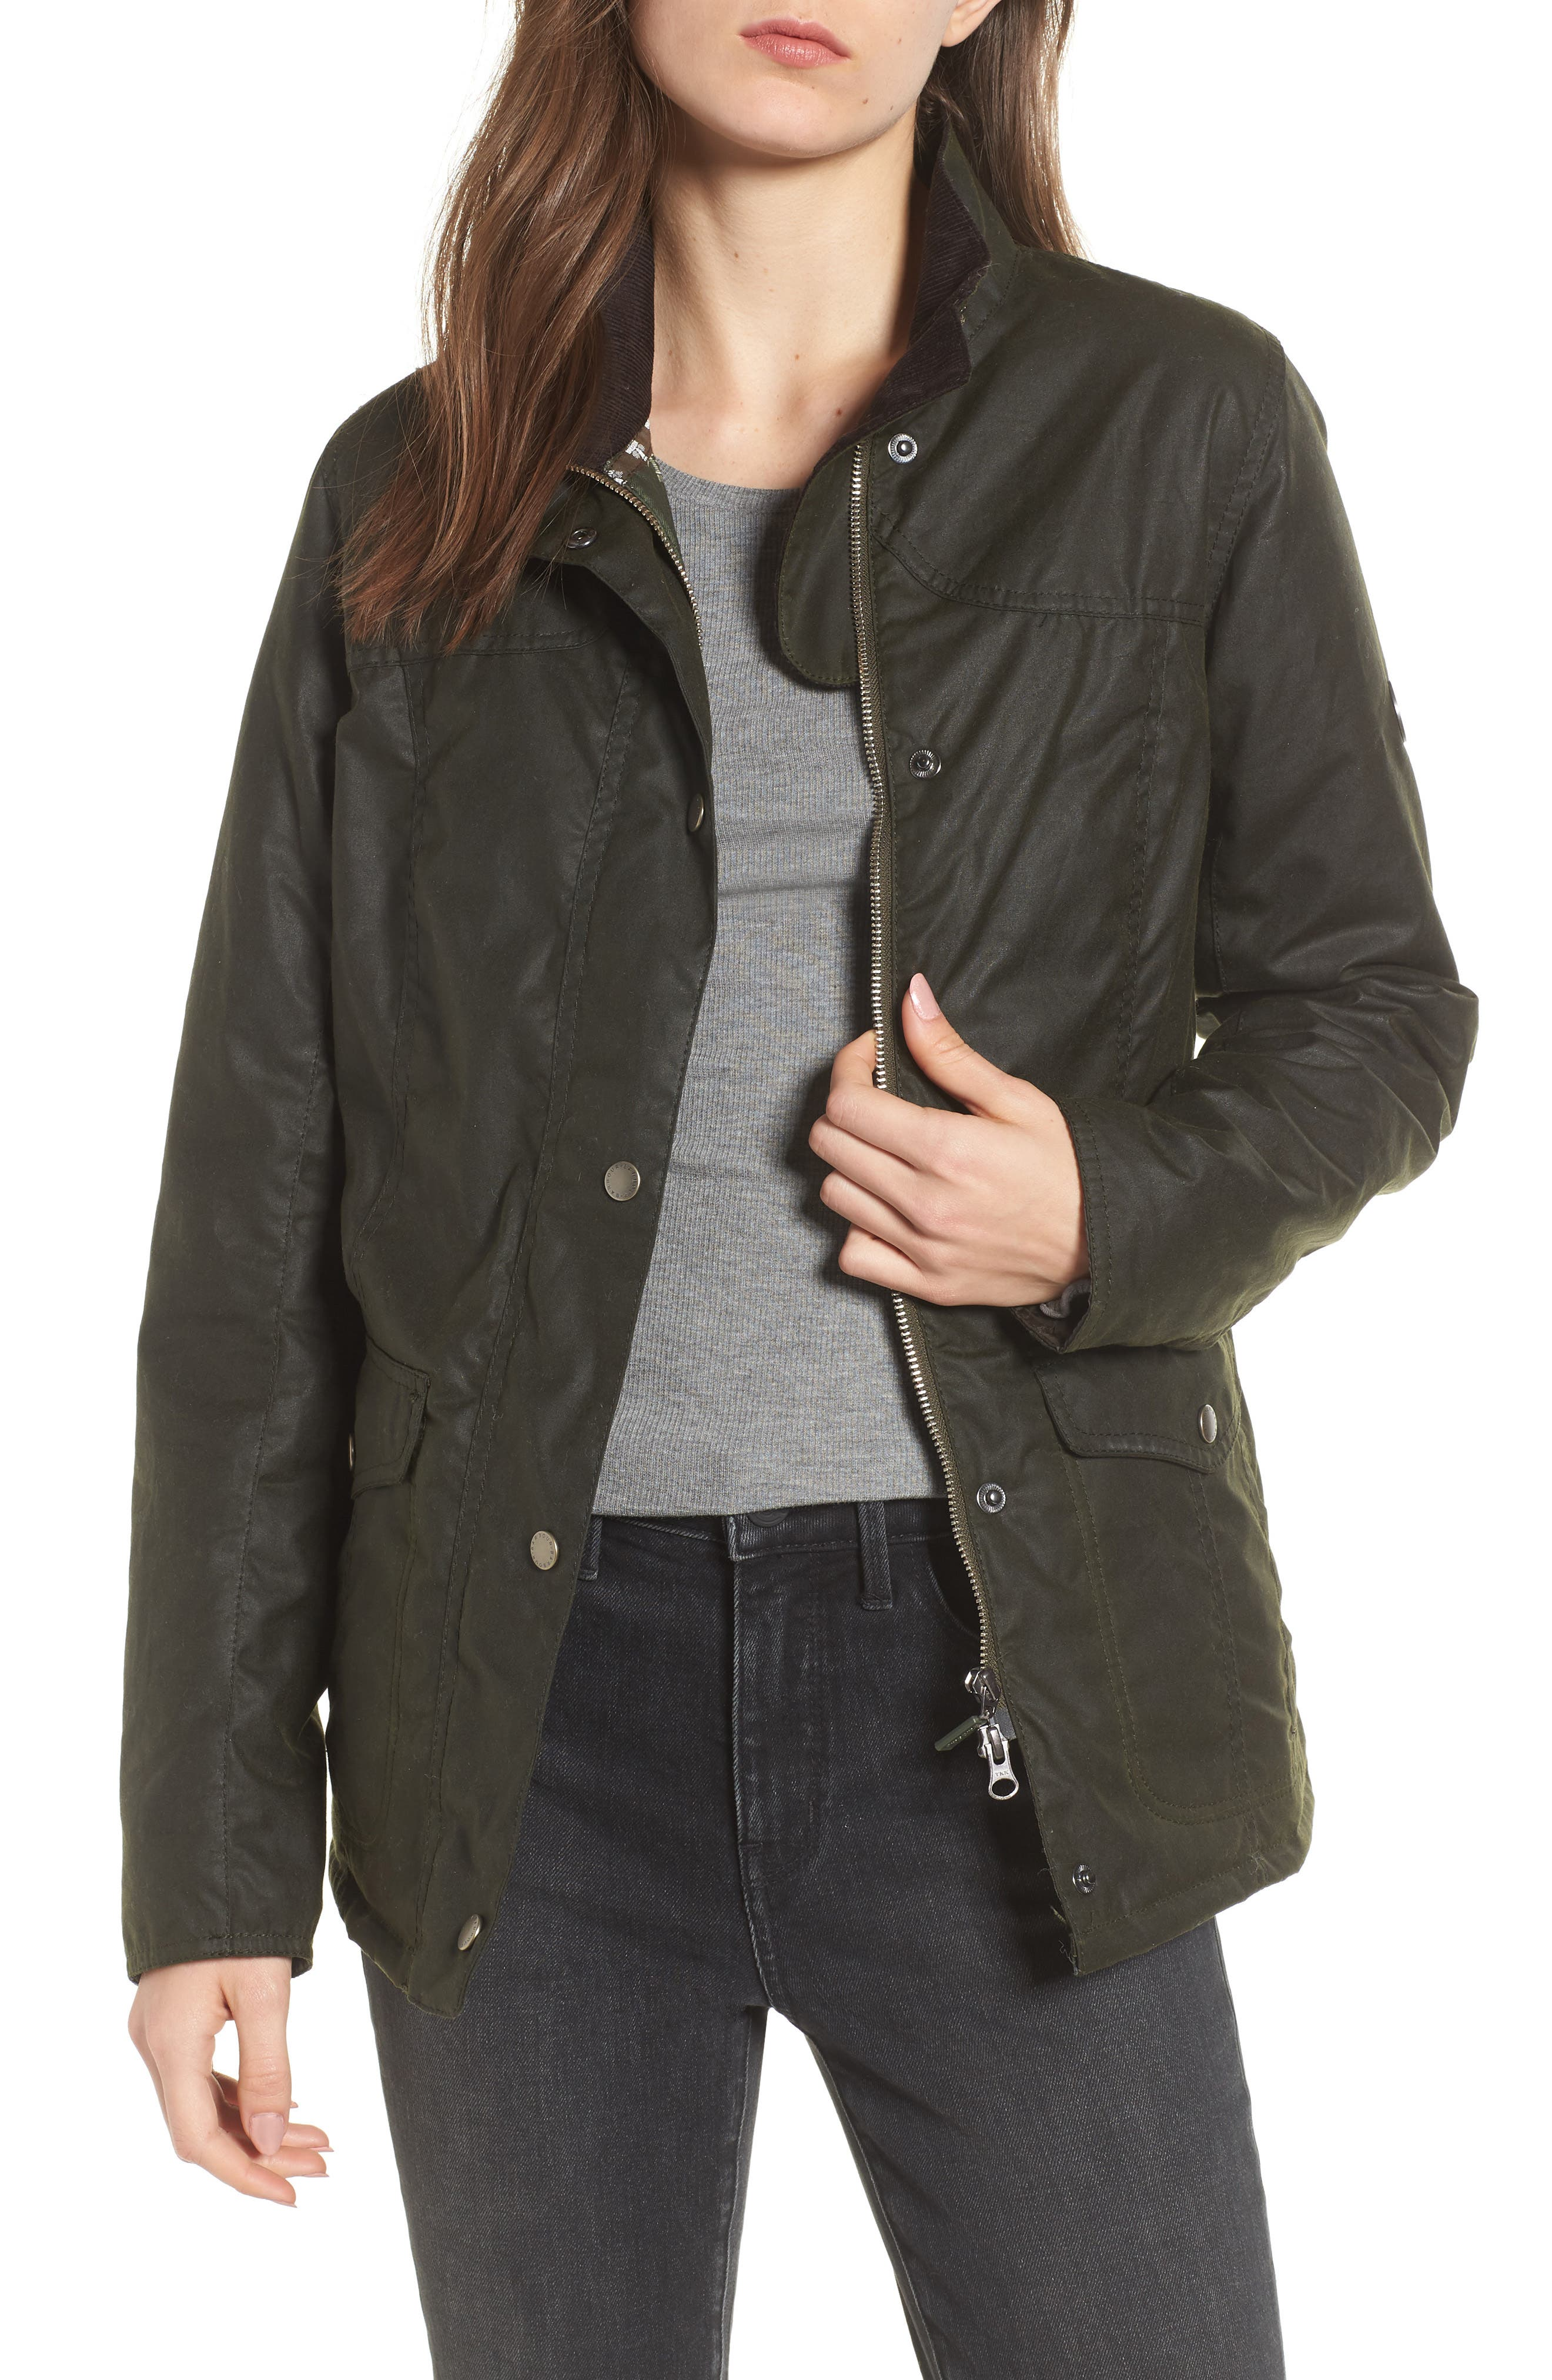 Barbour Of England Women S Country Outddors Clothing